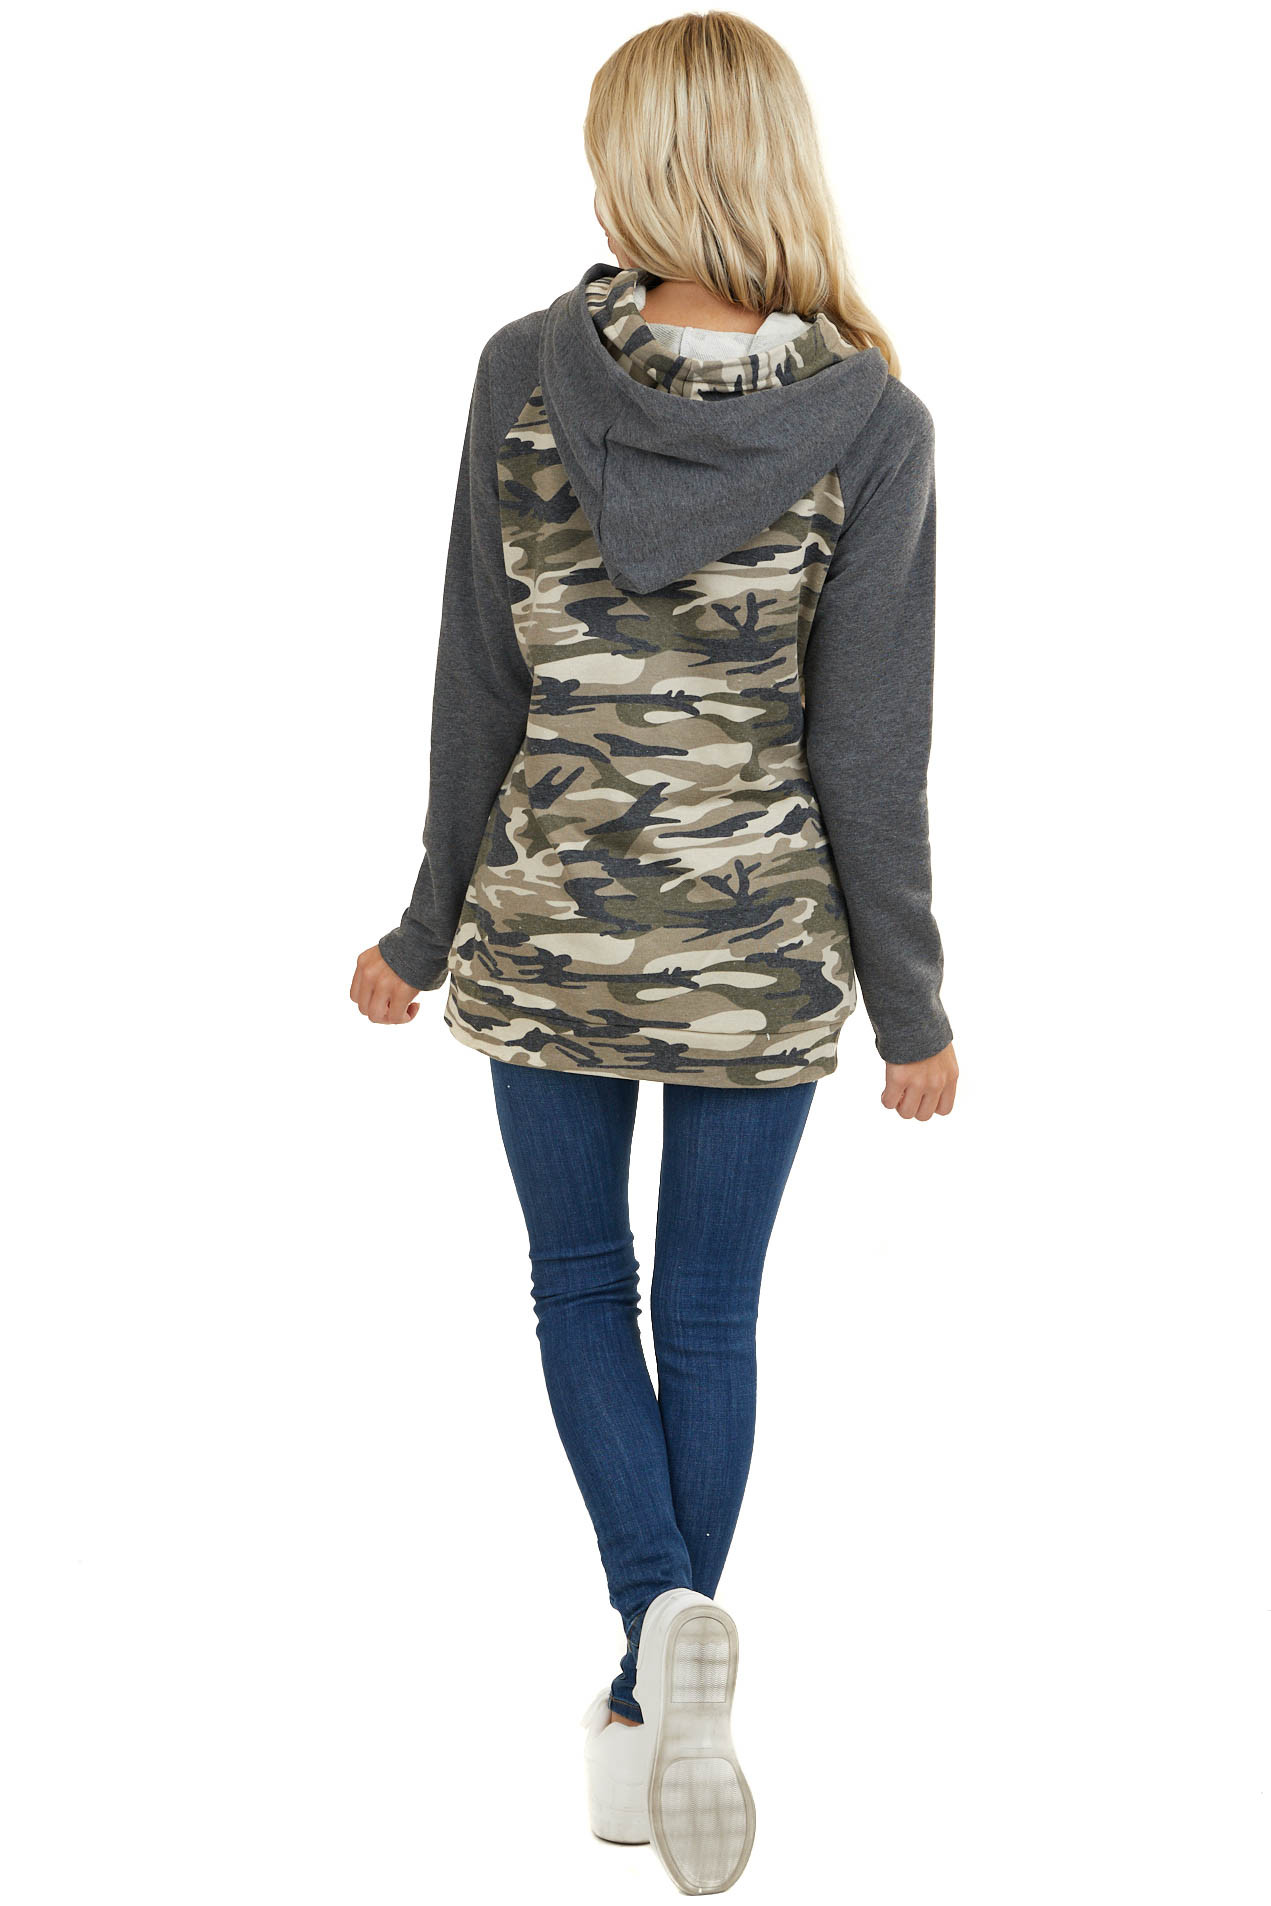 Charcoal Grey Camo Hoodie with Double Hood and Zipper Detail